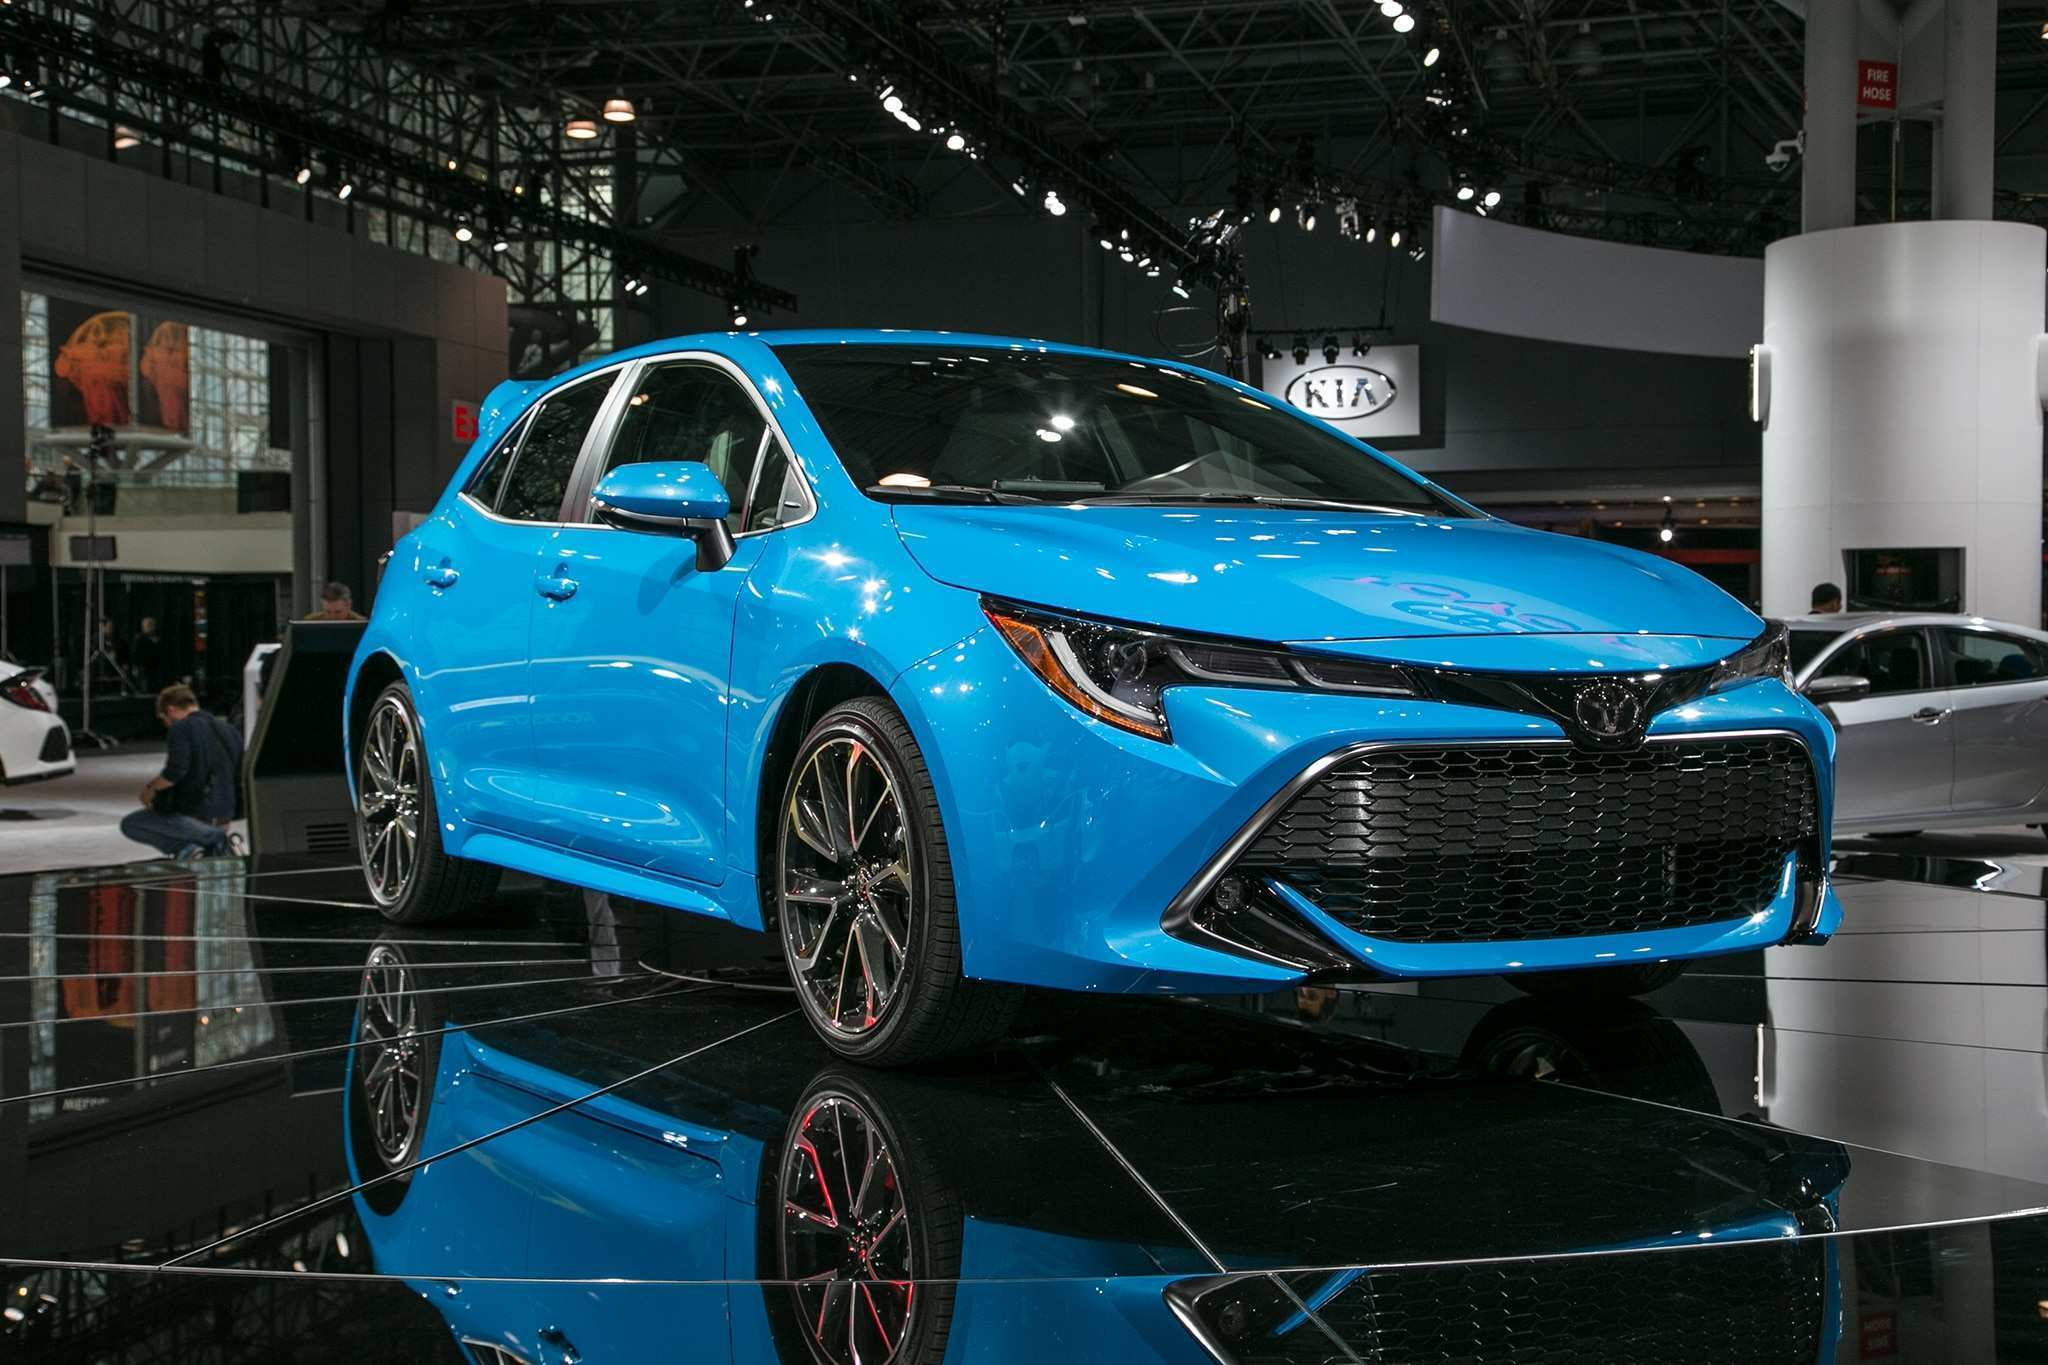 15 All New 2019 Toyota Usa Ratings by 2019 Toyota Usa